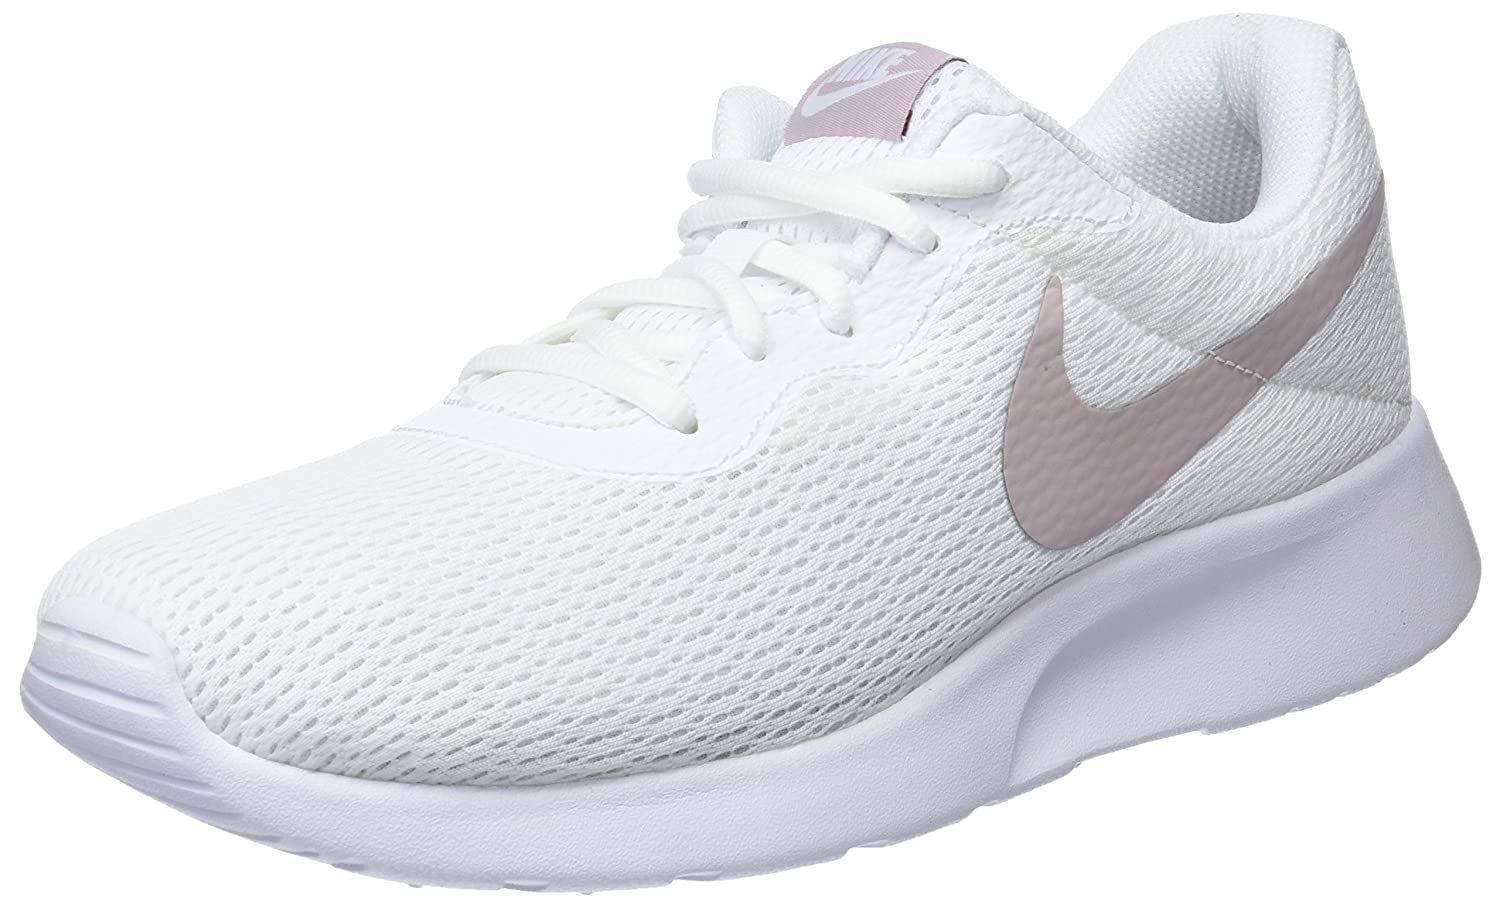 NIKE Women's Tanjun Running Shoes B07CF5ZRMY 7 B(M) US|White/Metallic Silver/Pure Platinum